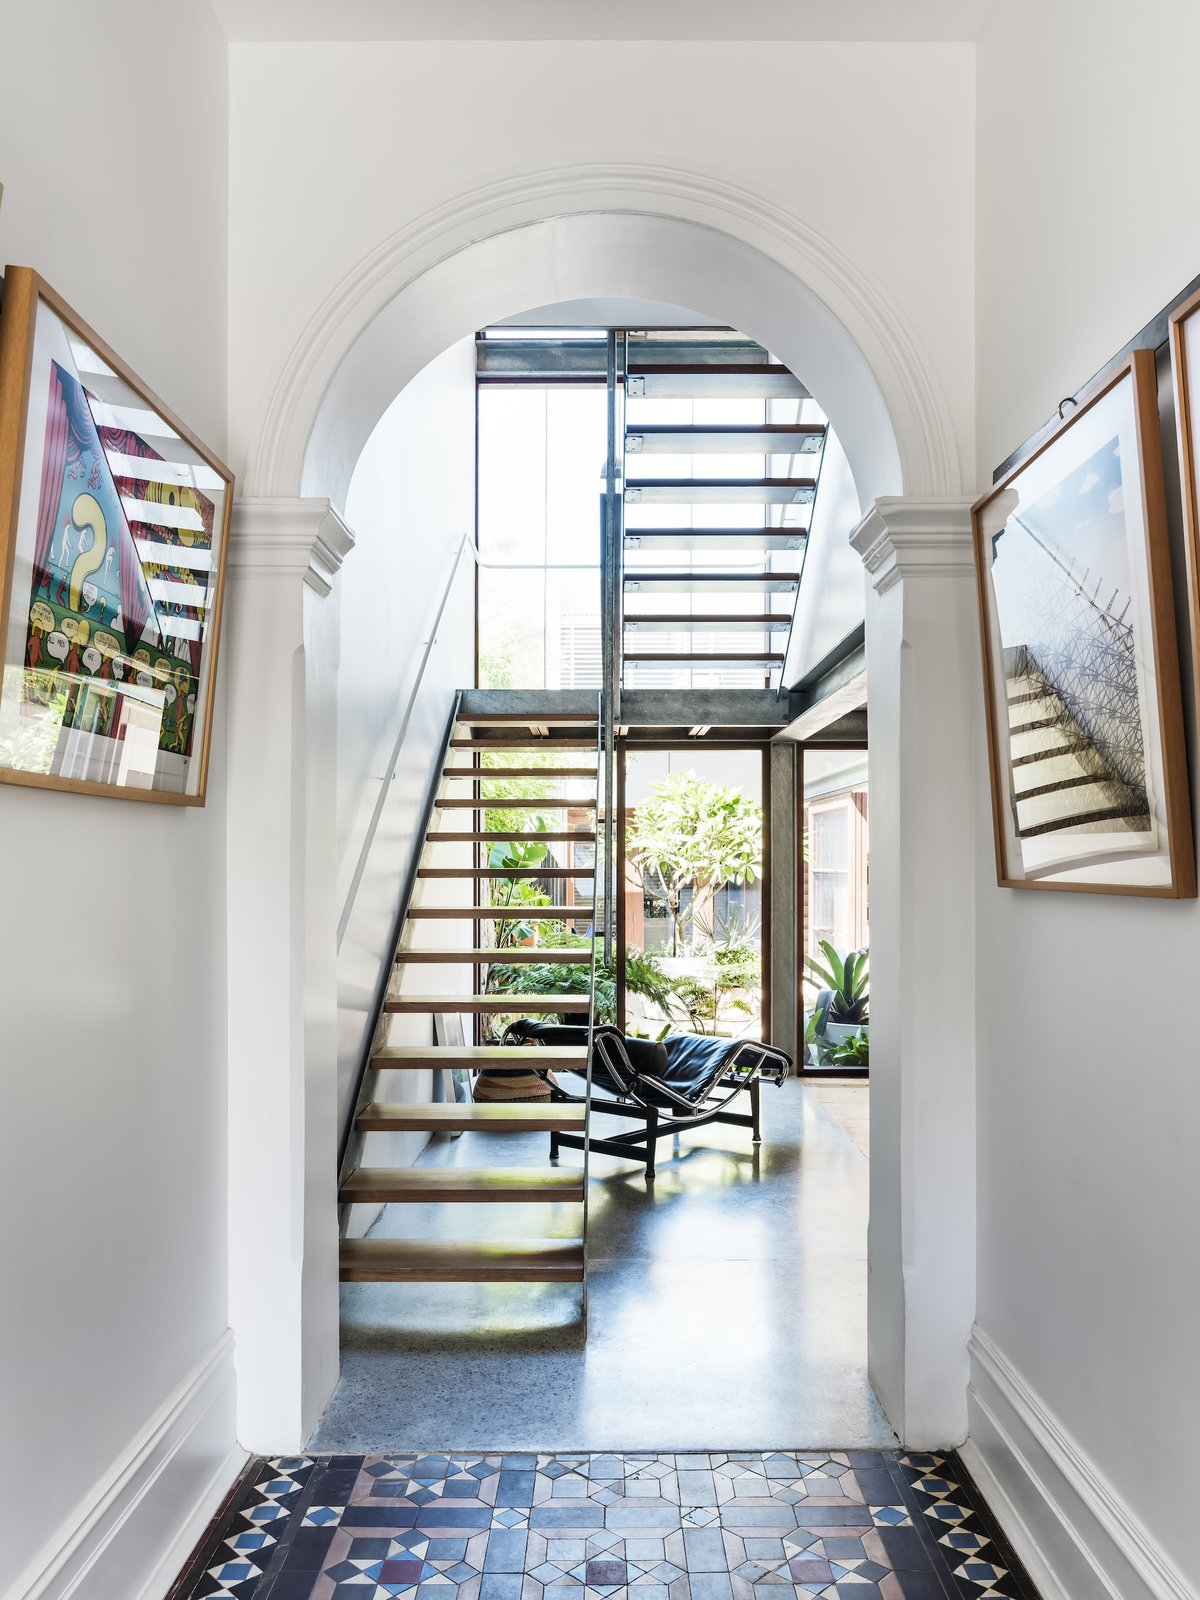 Stairs and hallway of Courtyard House by COX.